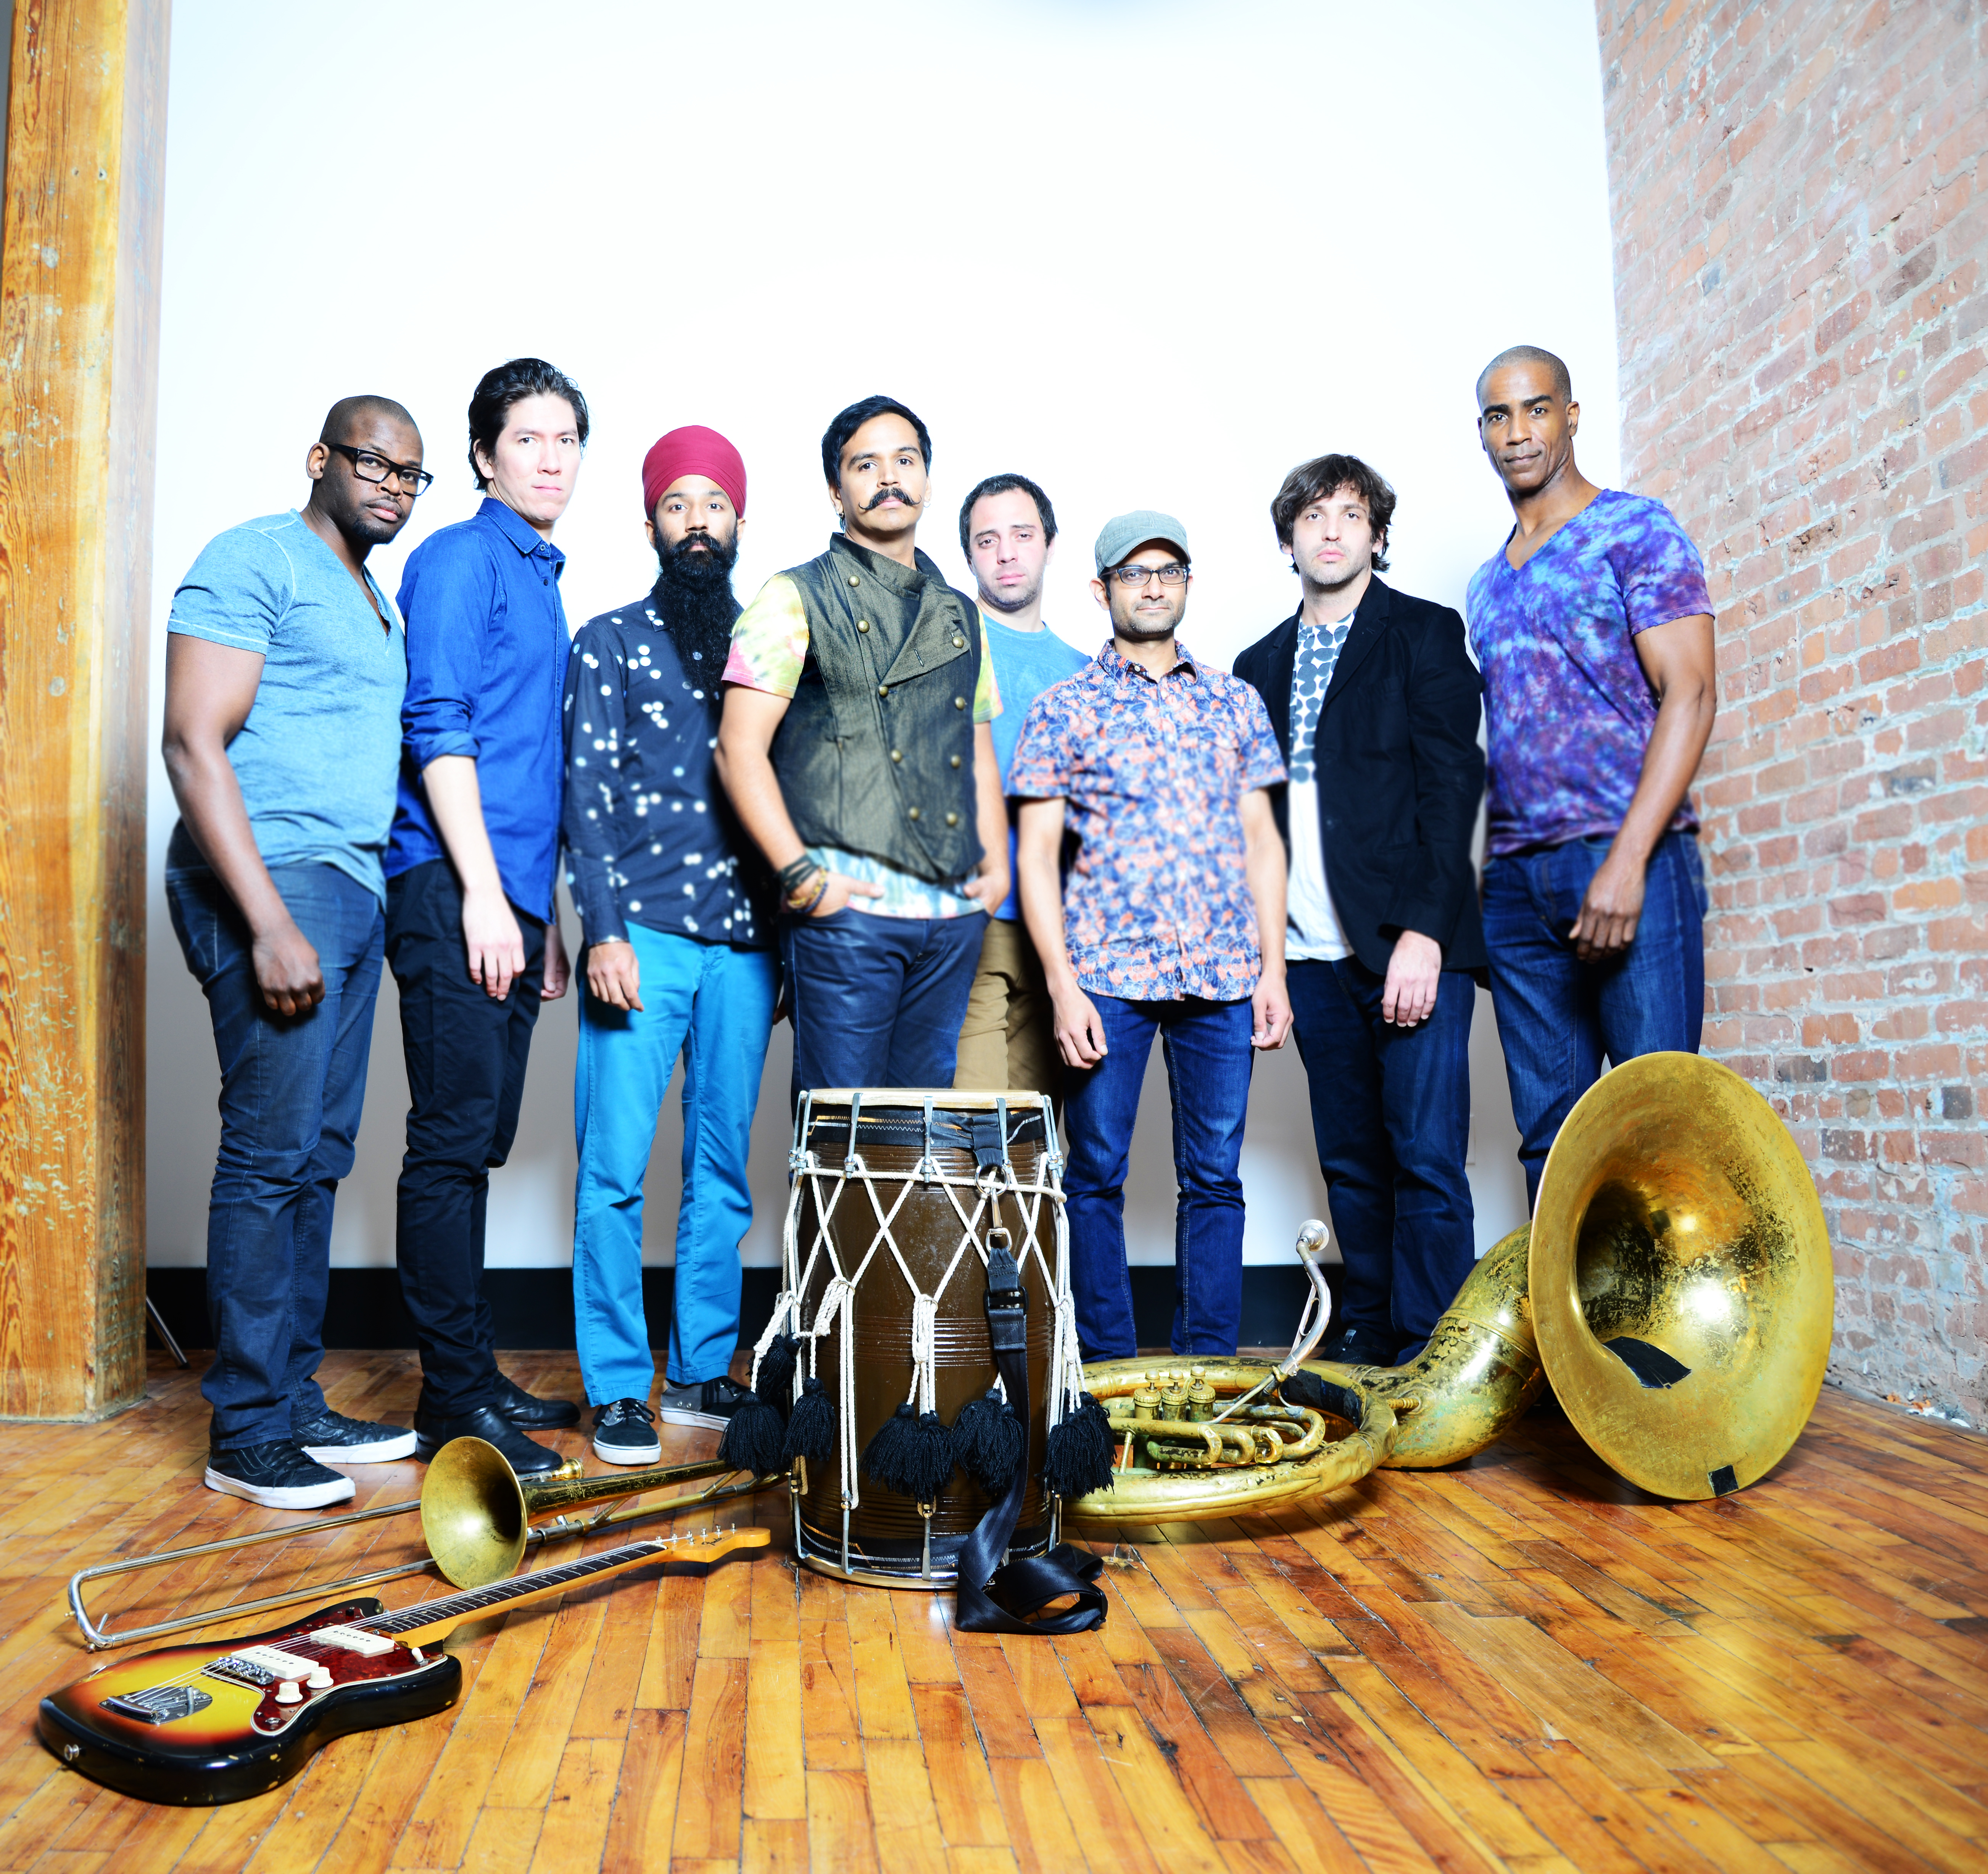 Red Baraat, photo by Shervin Lainez